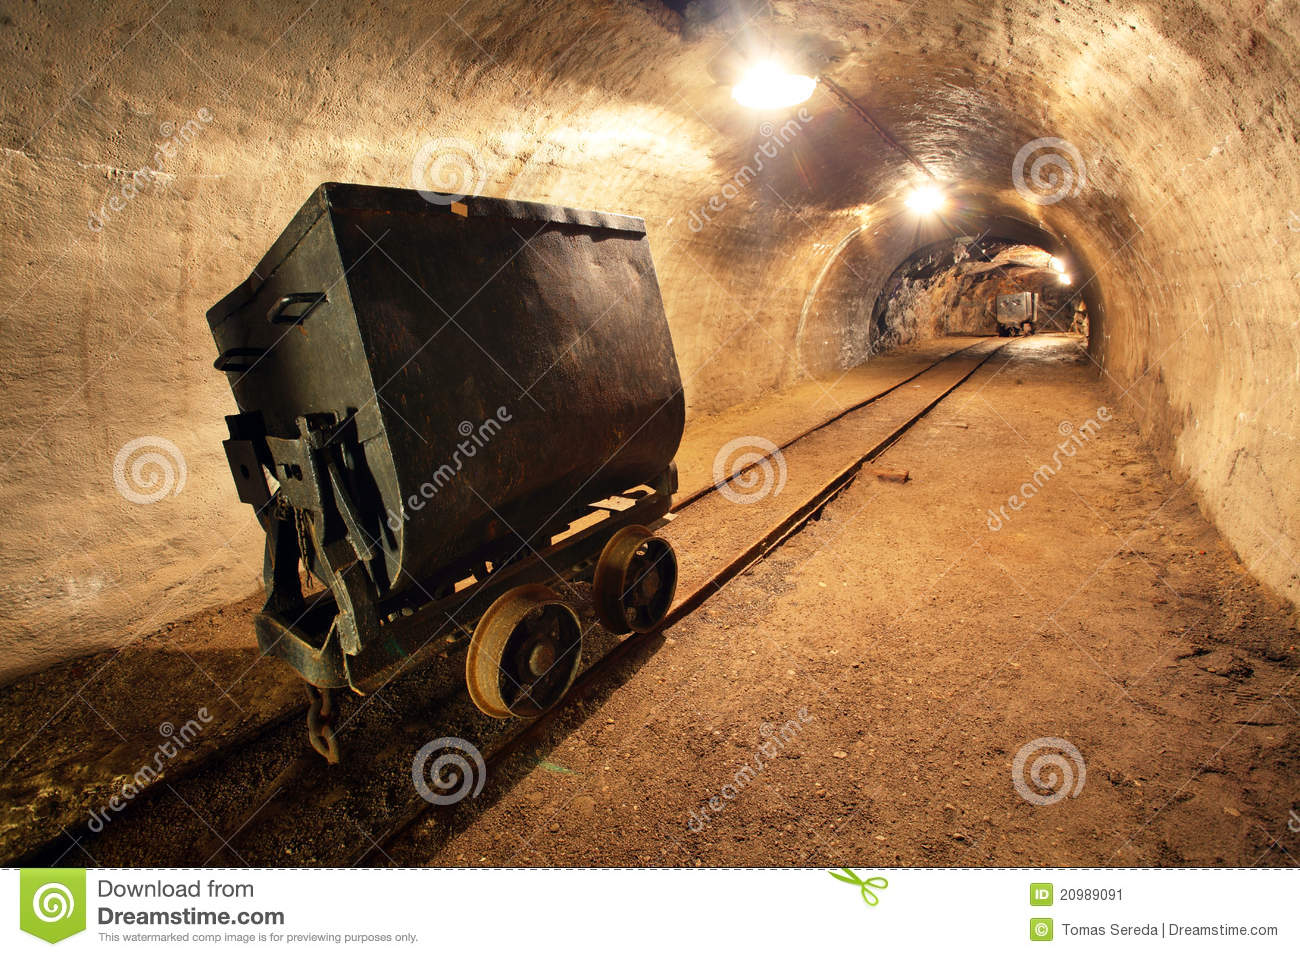 Underground train in mine, carts in gold, silver